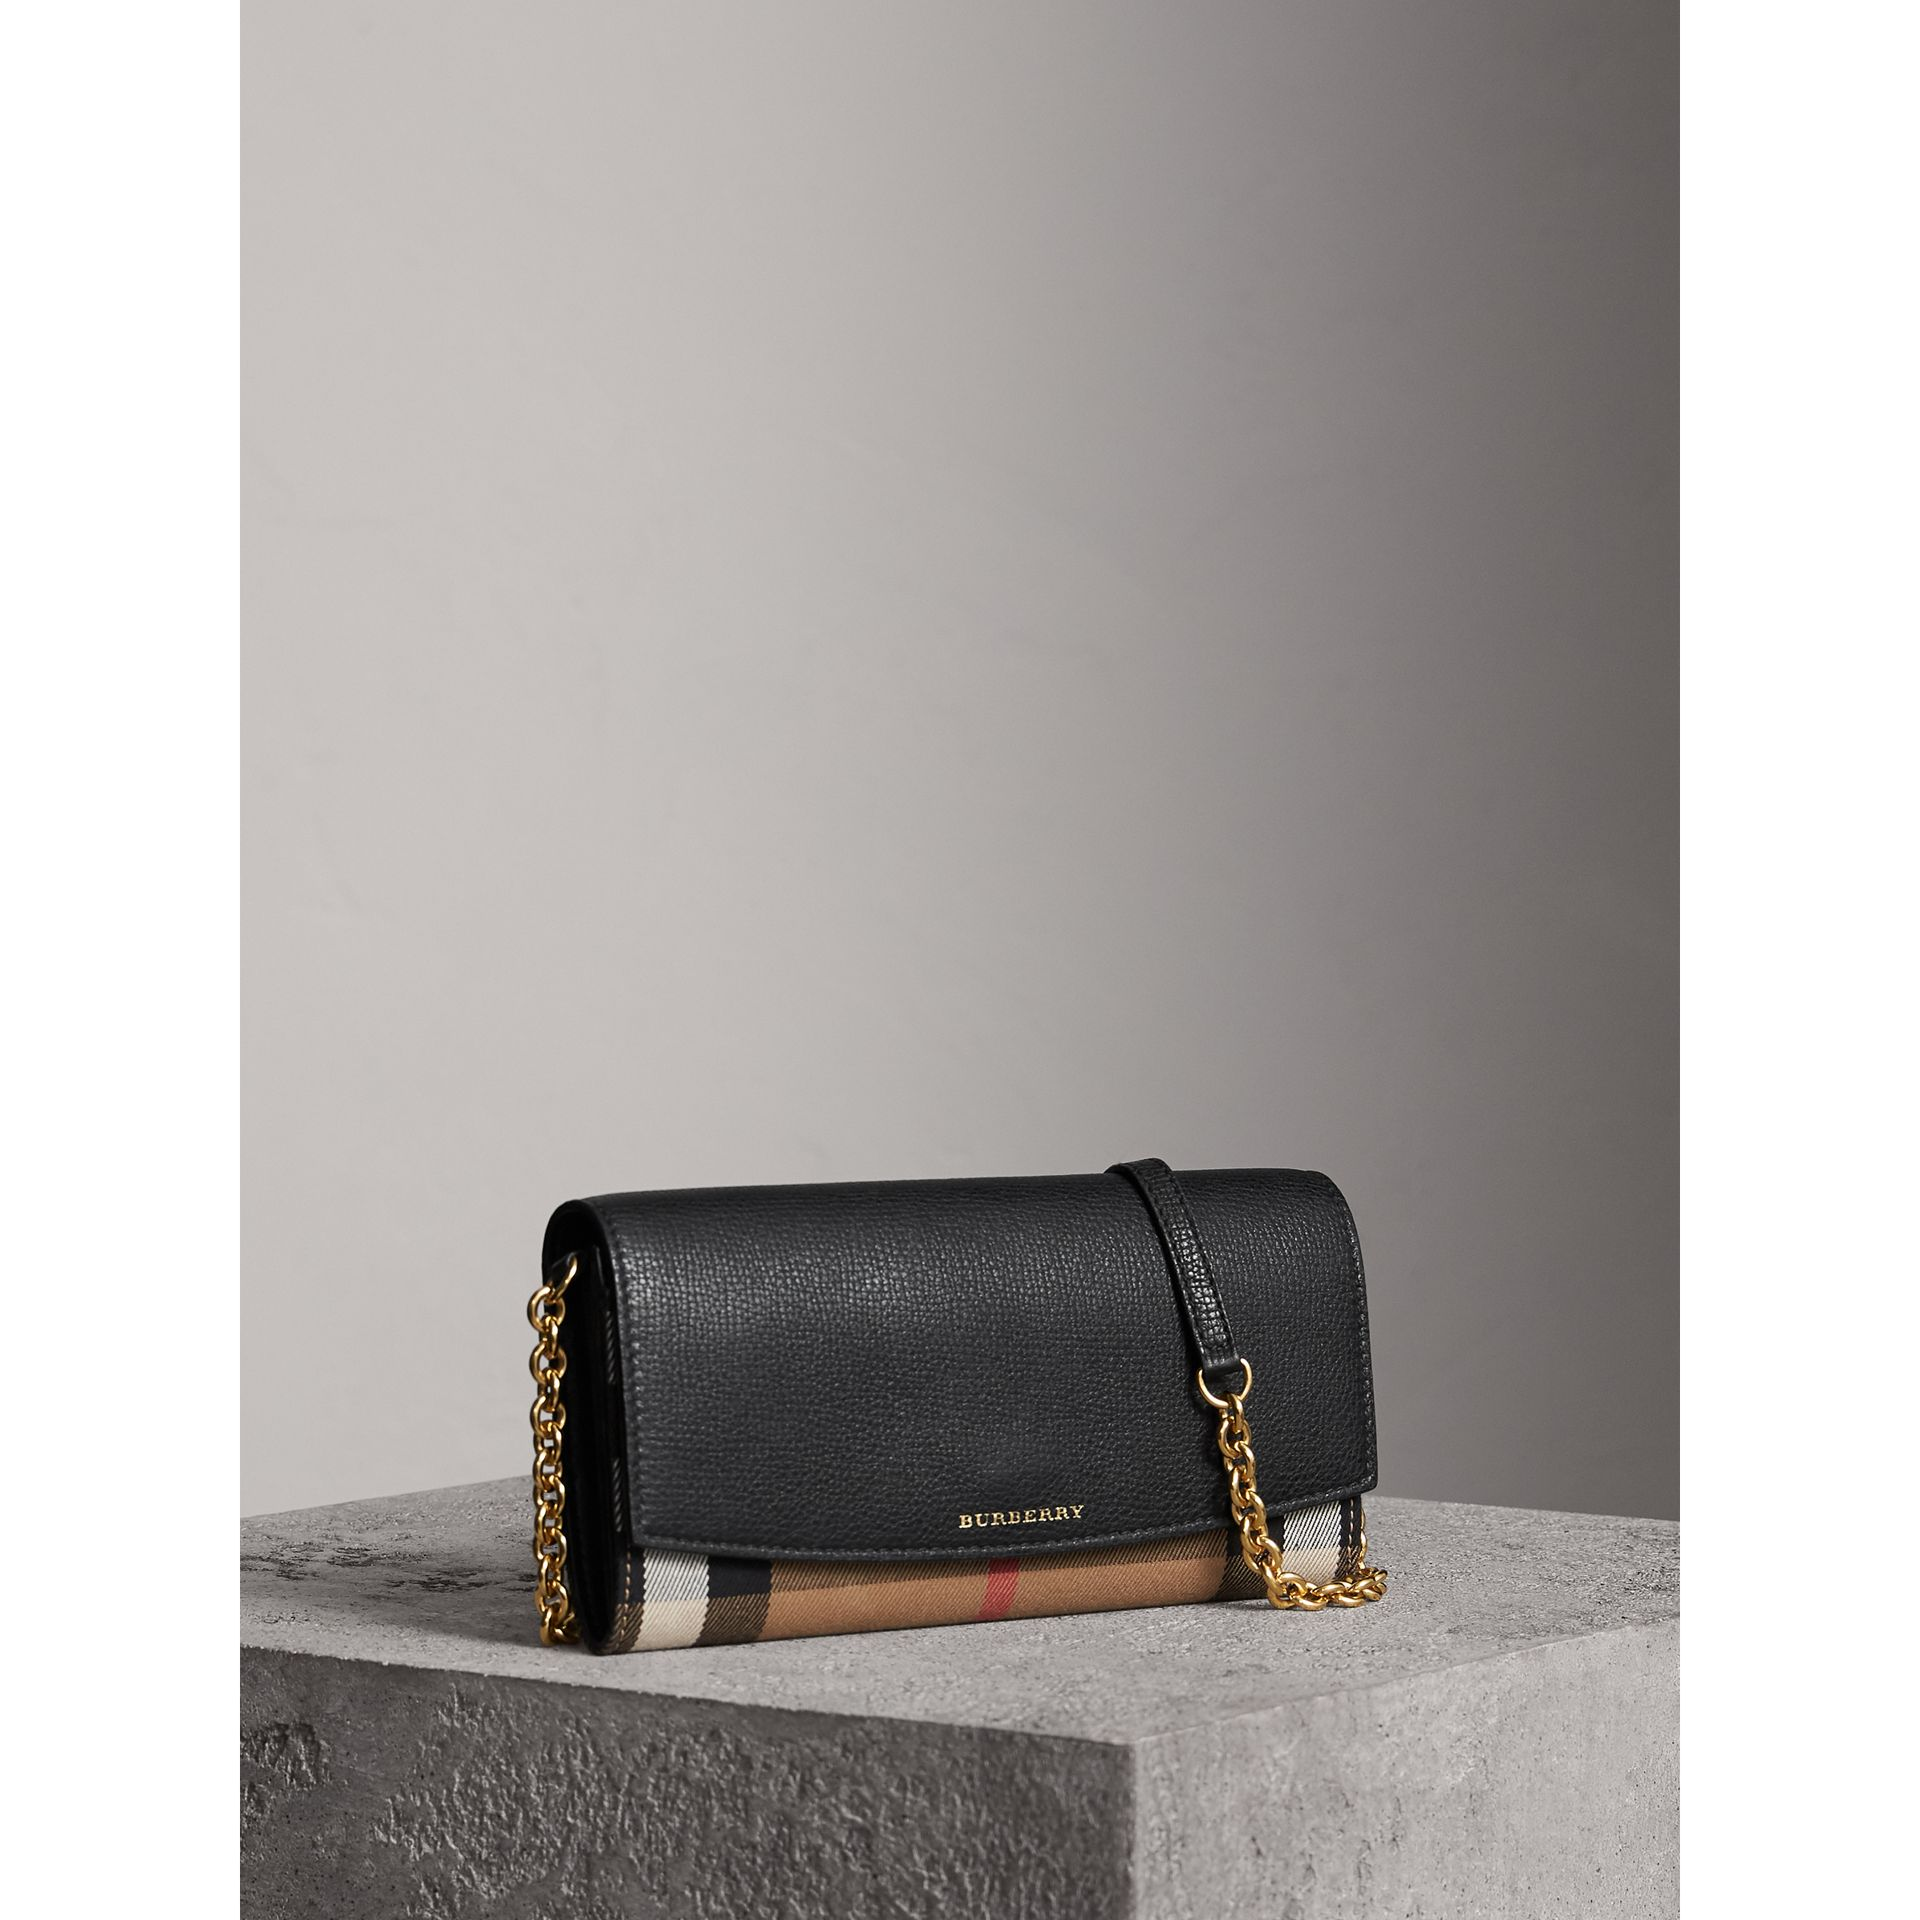 House Check and Leather Wallet with Chain in Black - Women | Burberry Australia - gallery image 1